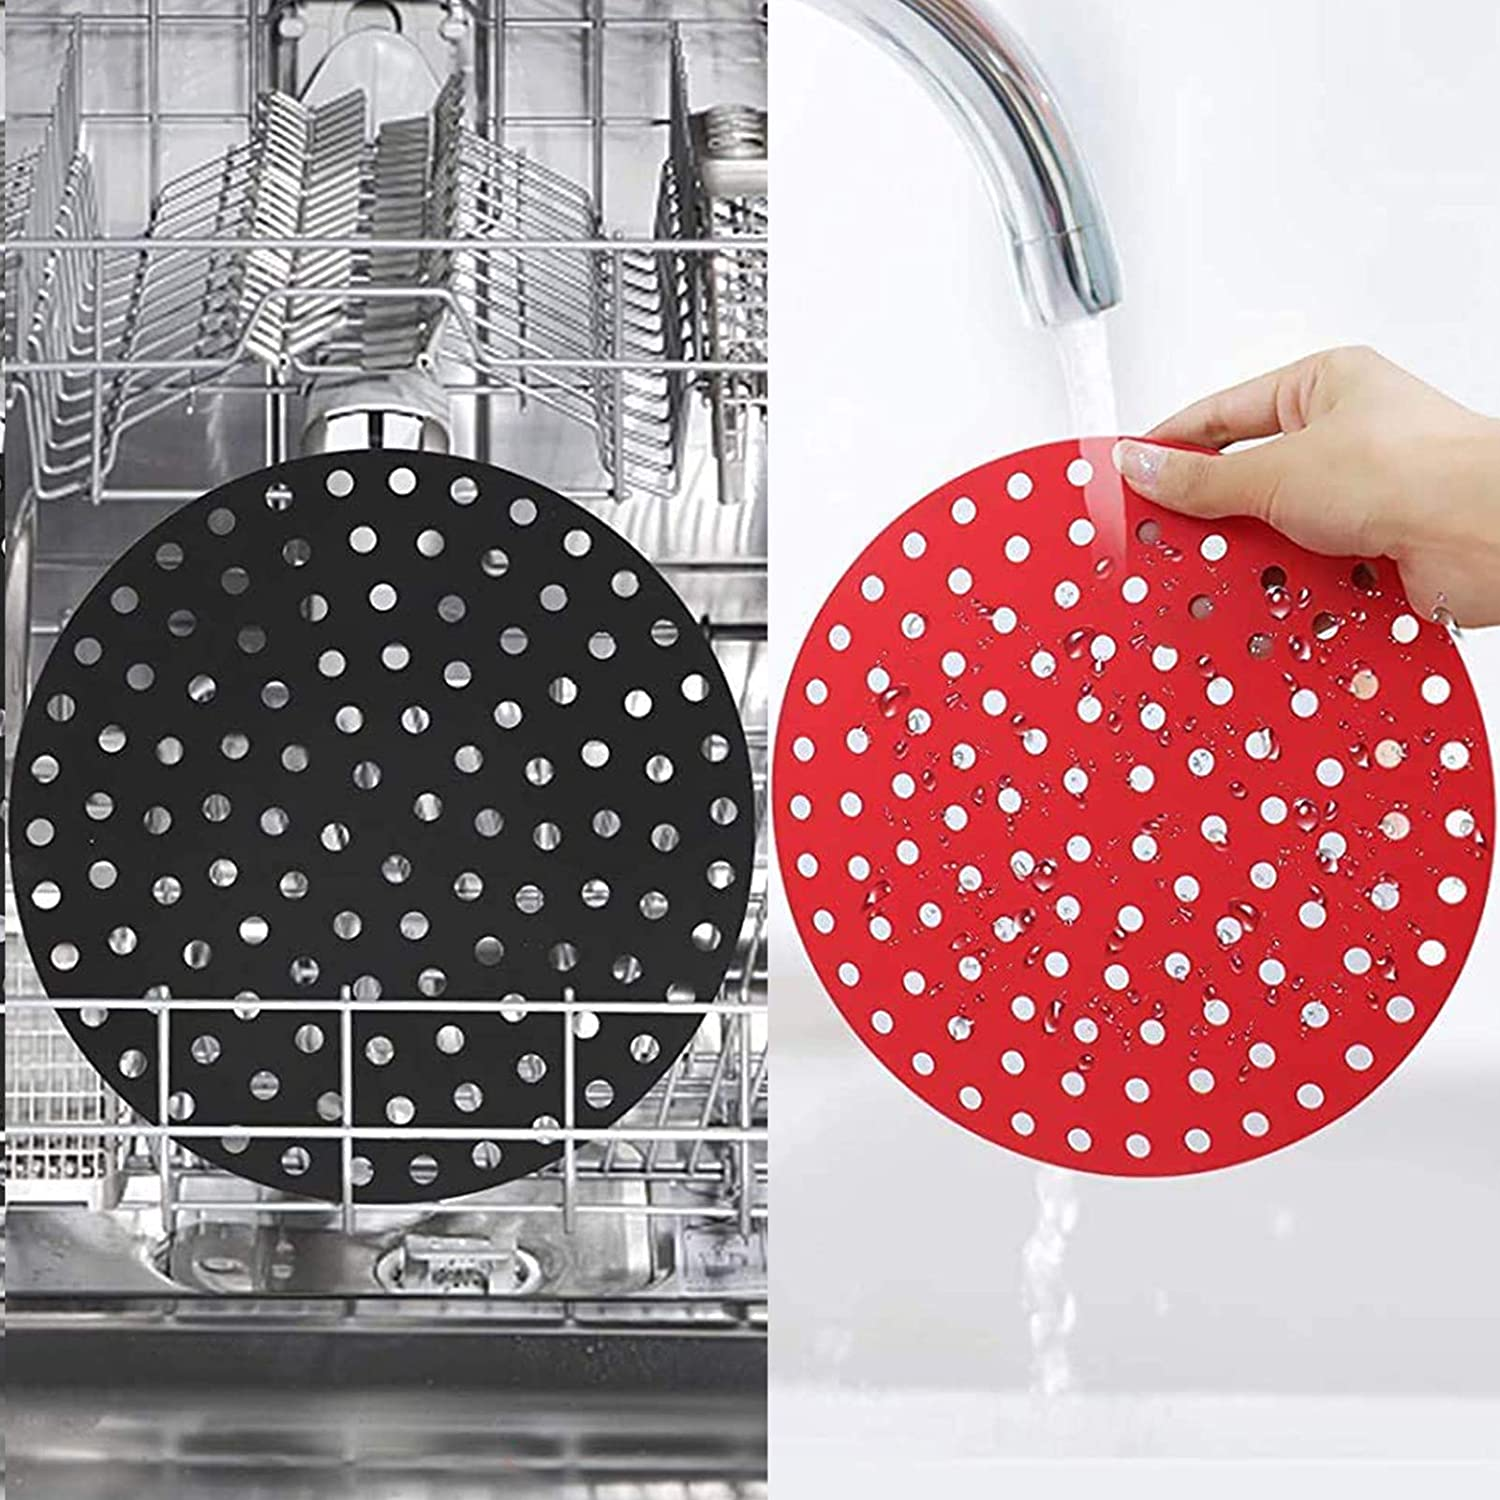 Reusable Air Fryer Liners – 9 inch Round, Non-Stick Silicone Air Fryer Basket Mats | Air Fryer Accessories For Cosori, Ninja, Cozyna, Dash and More | BPA Free in Kitchen